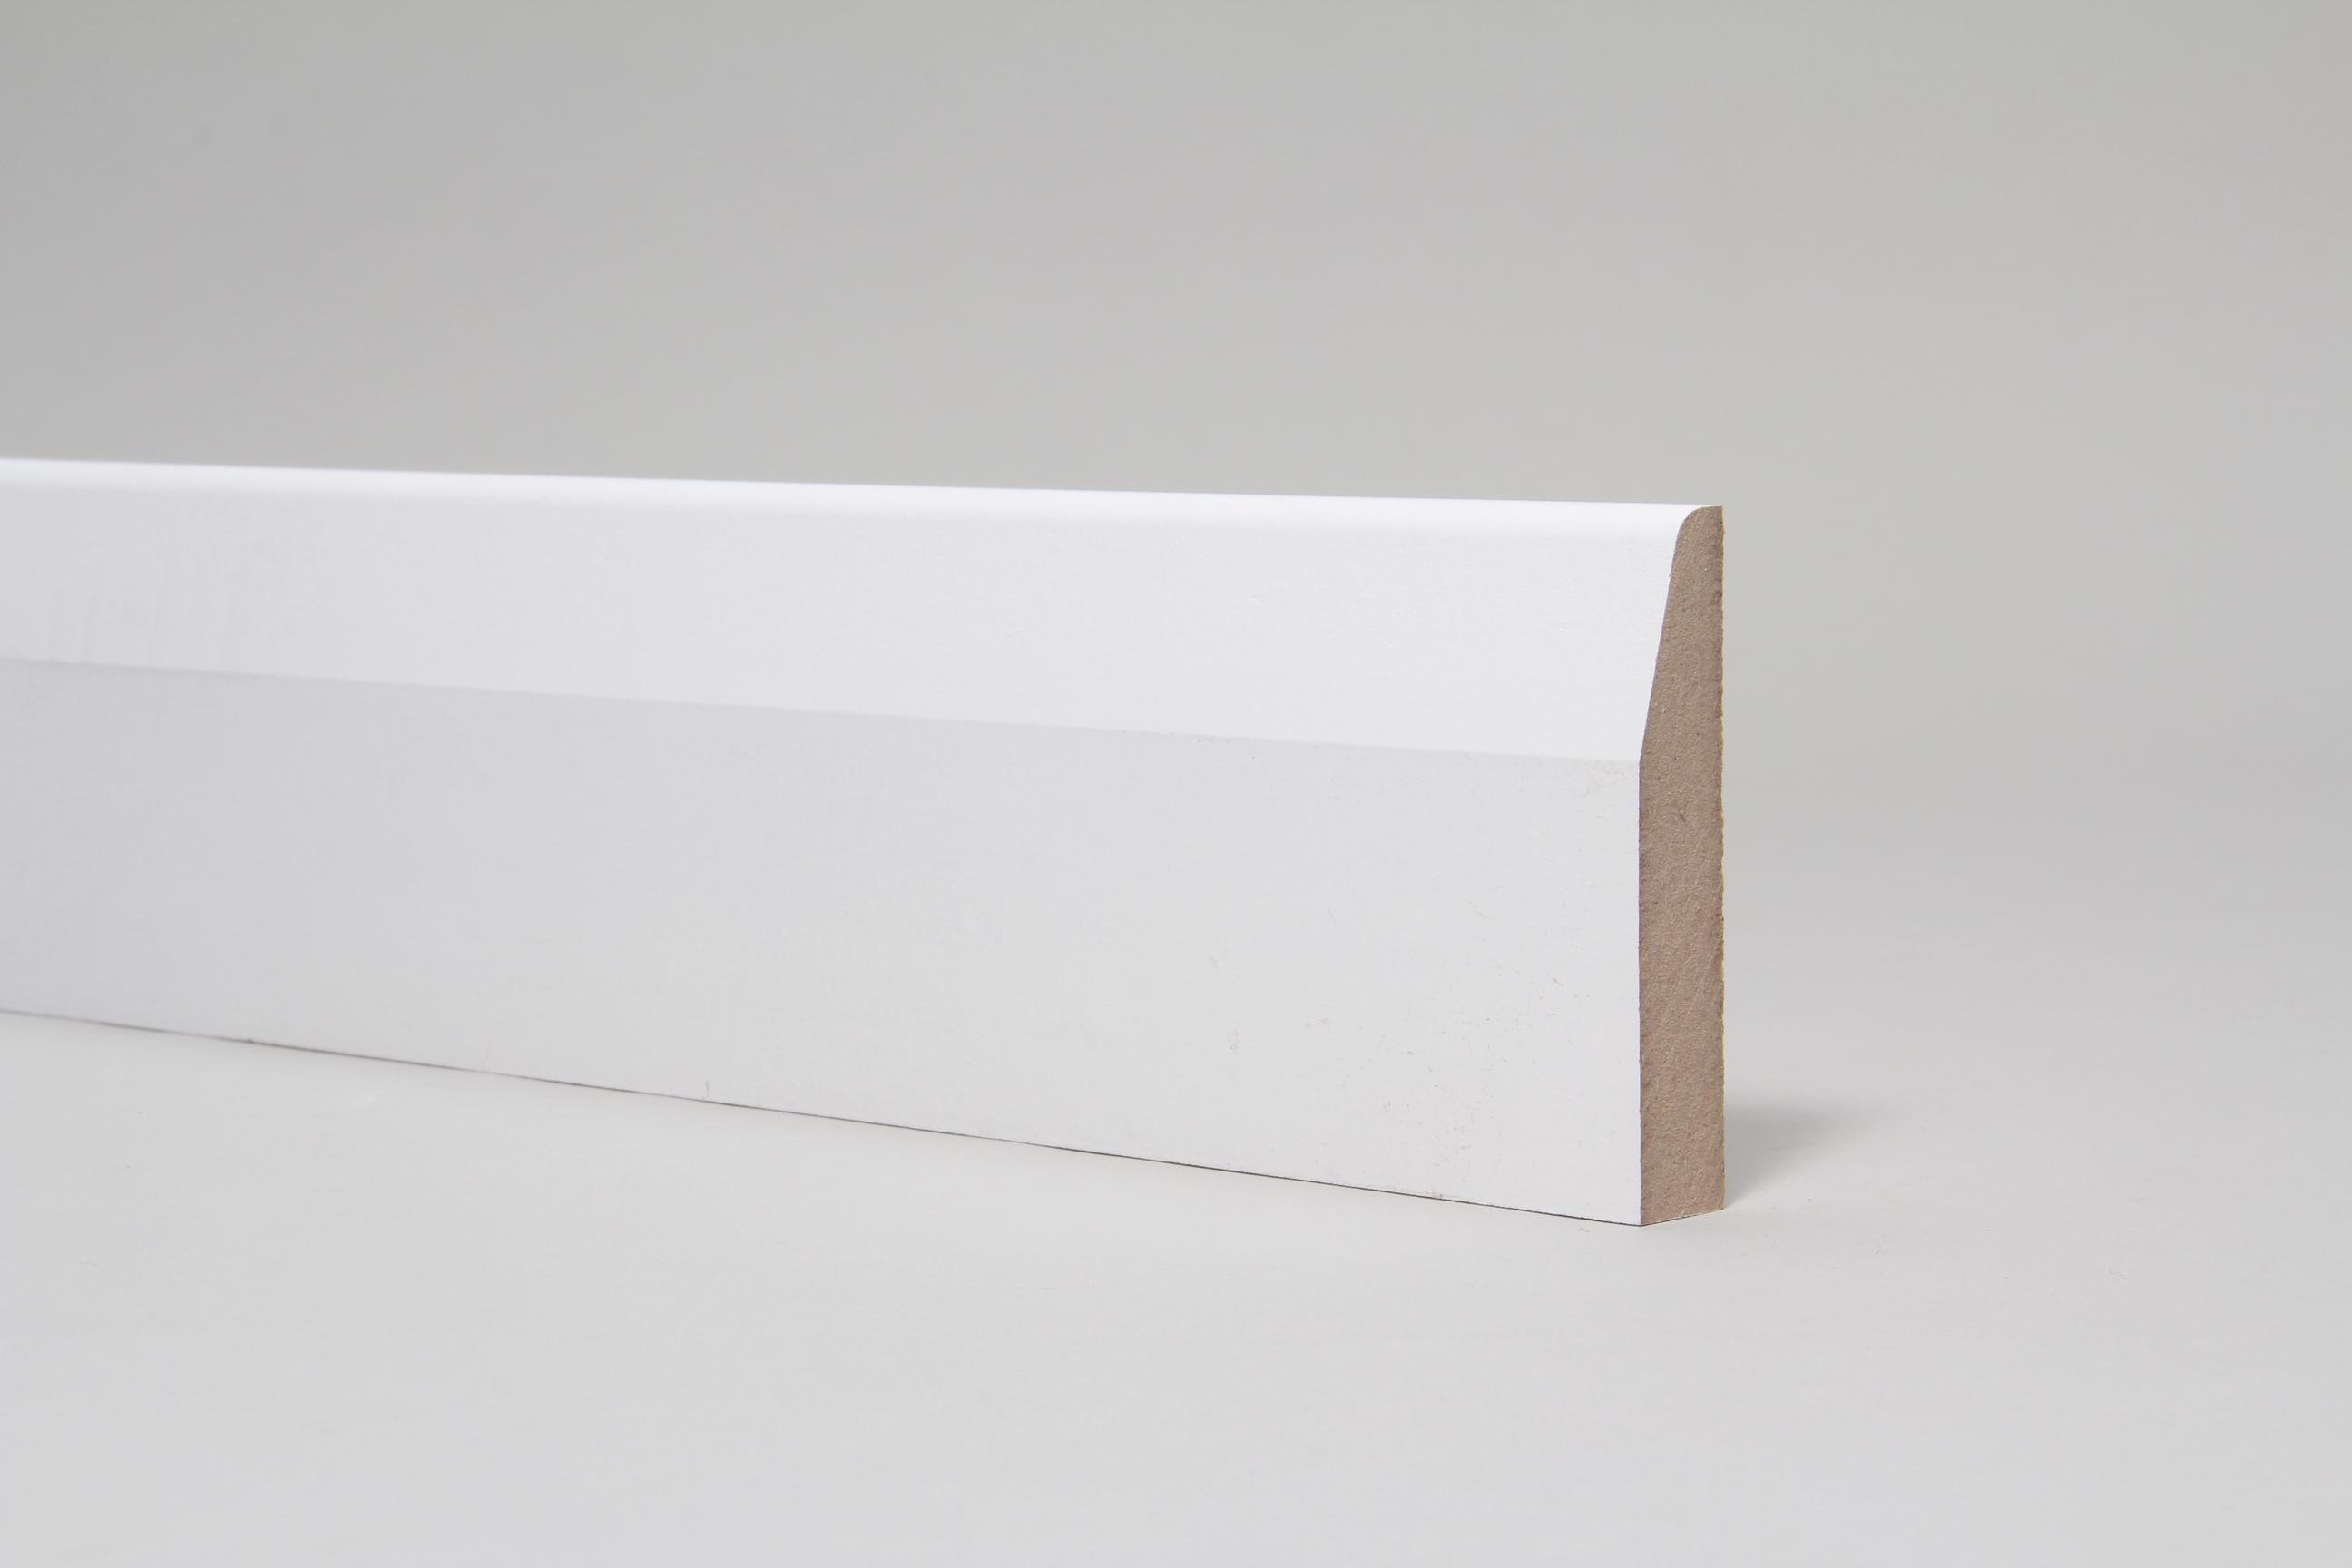 Chamfered & Rounded 18mm x 94mm x 4.4 Mtr Primed